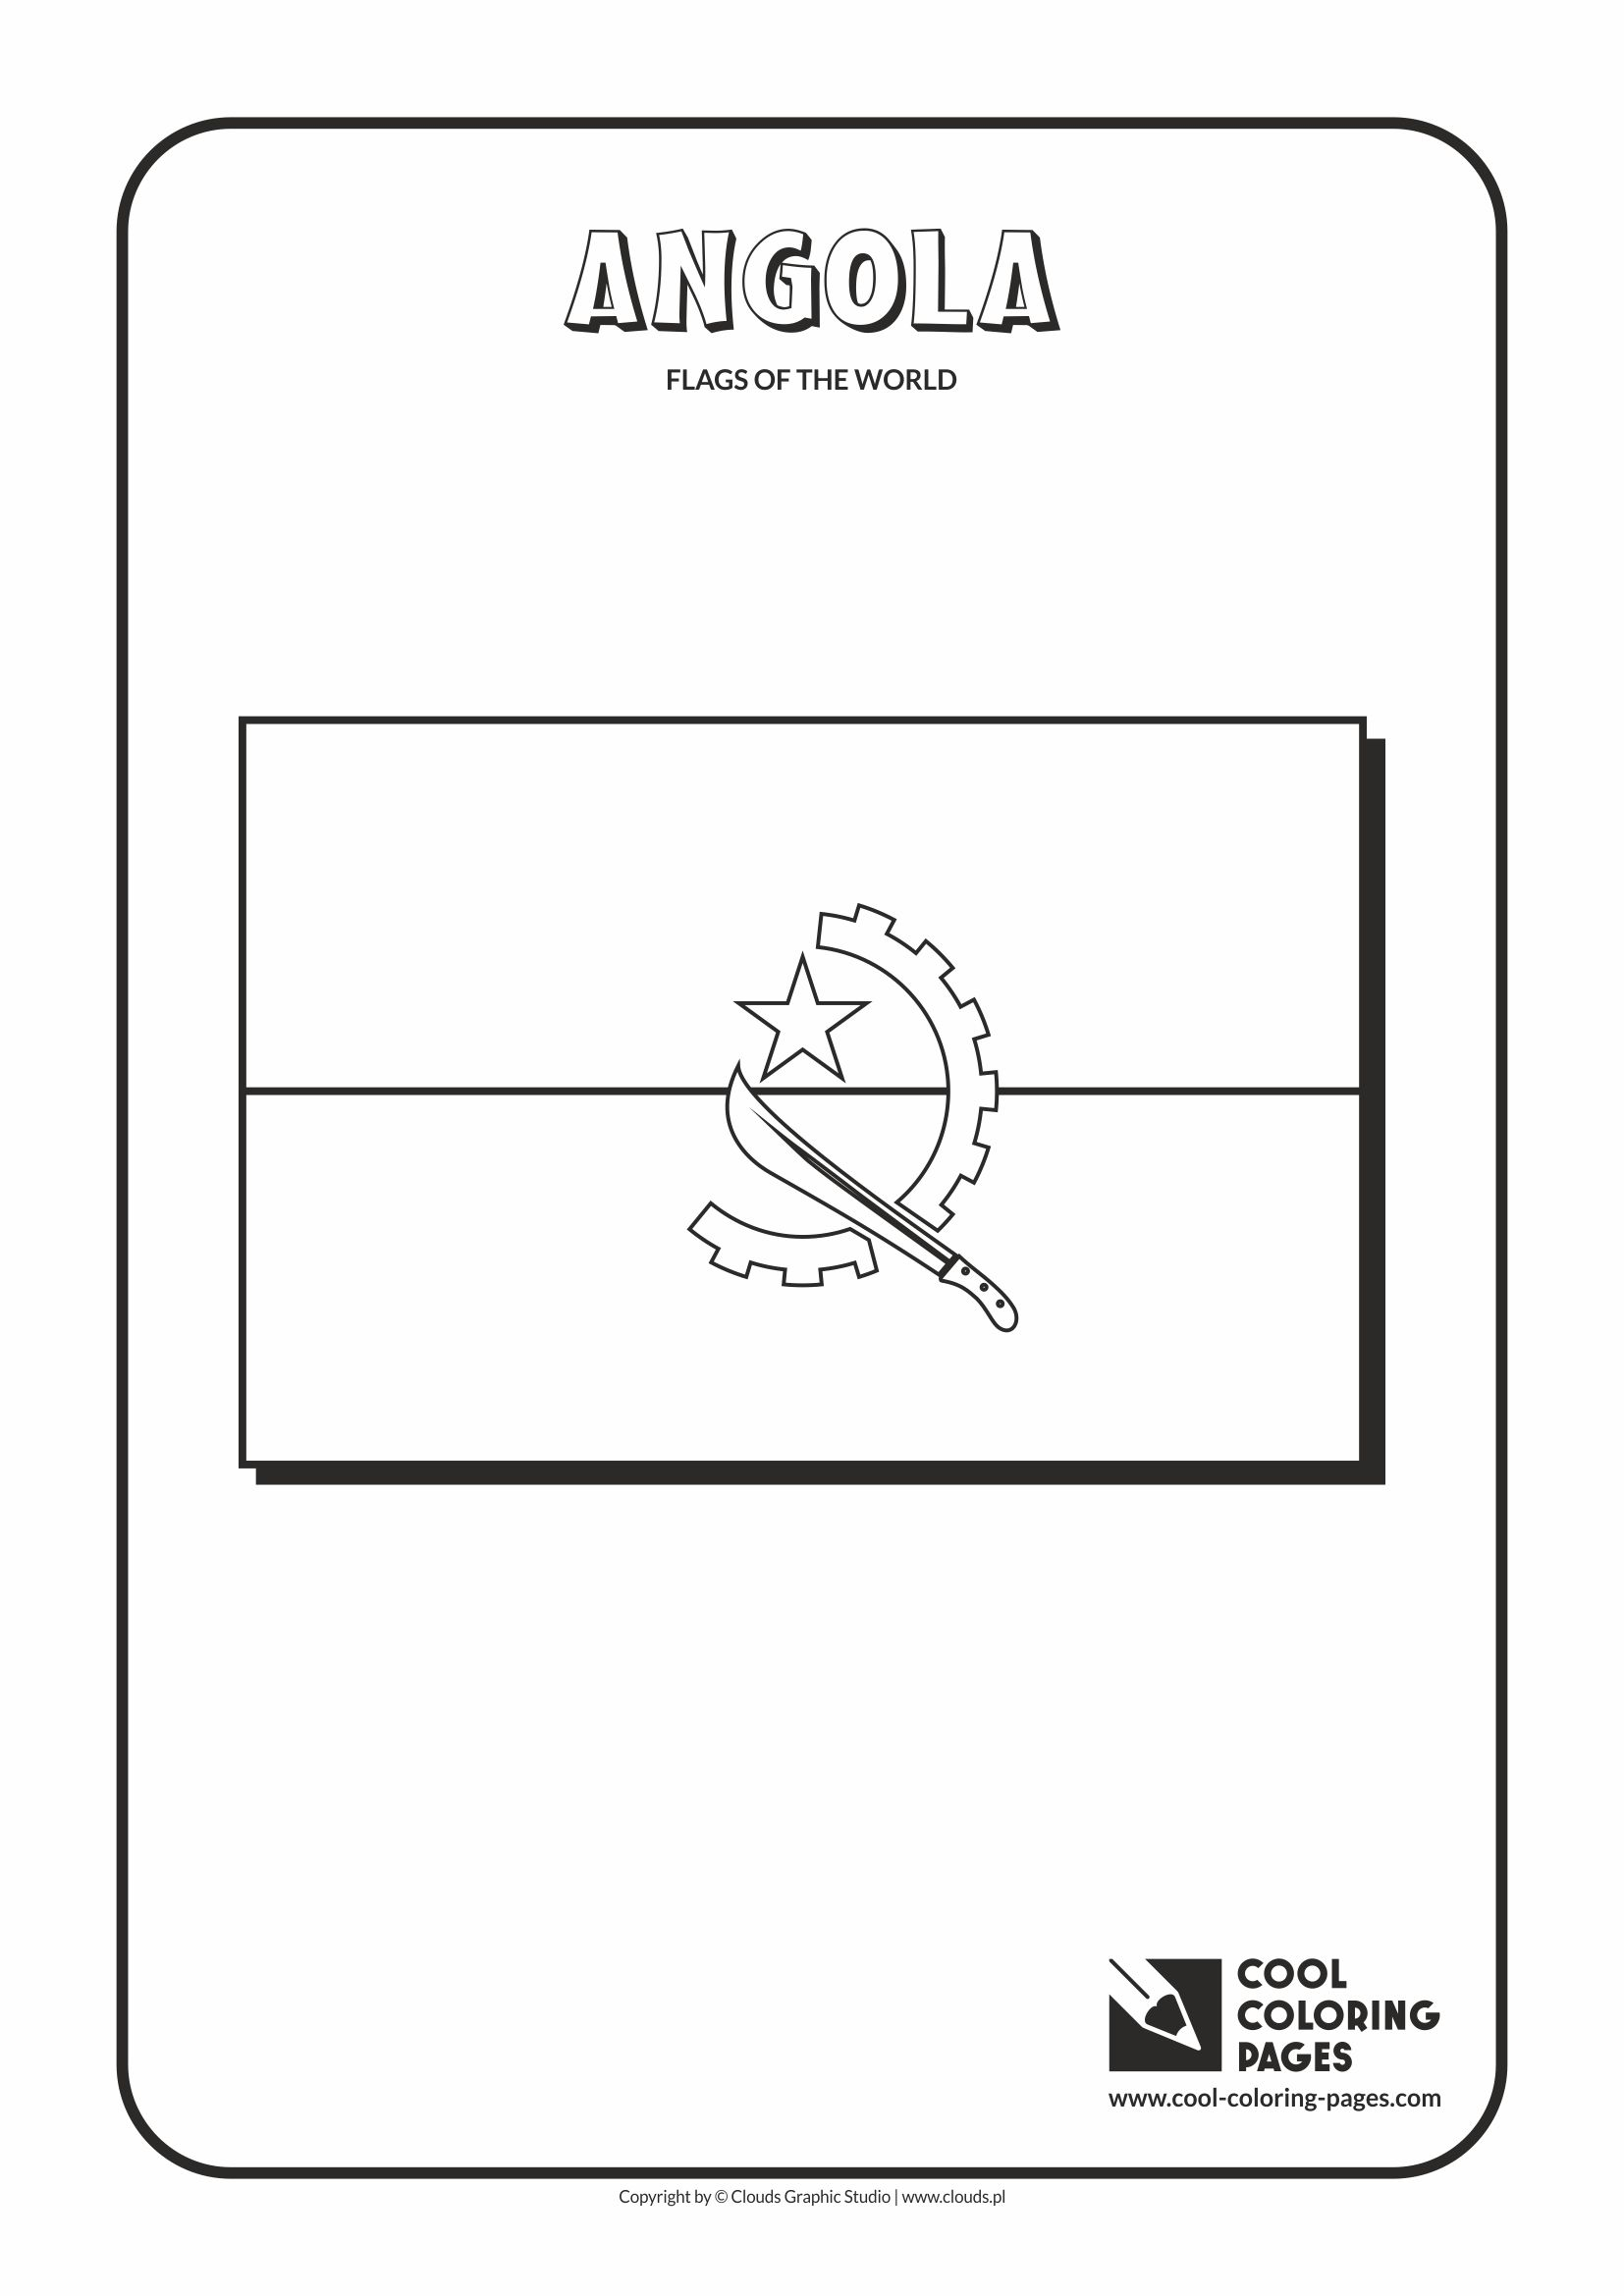 Cool Coloring Pages - Flags of the world / Angola flag